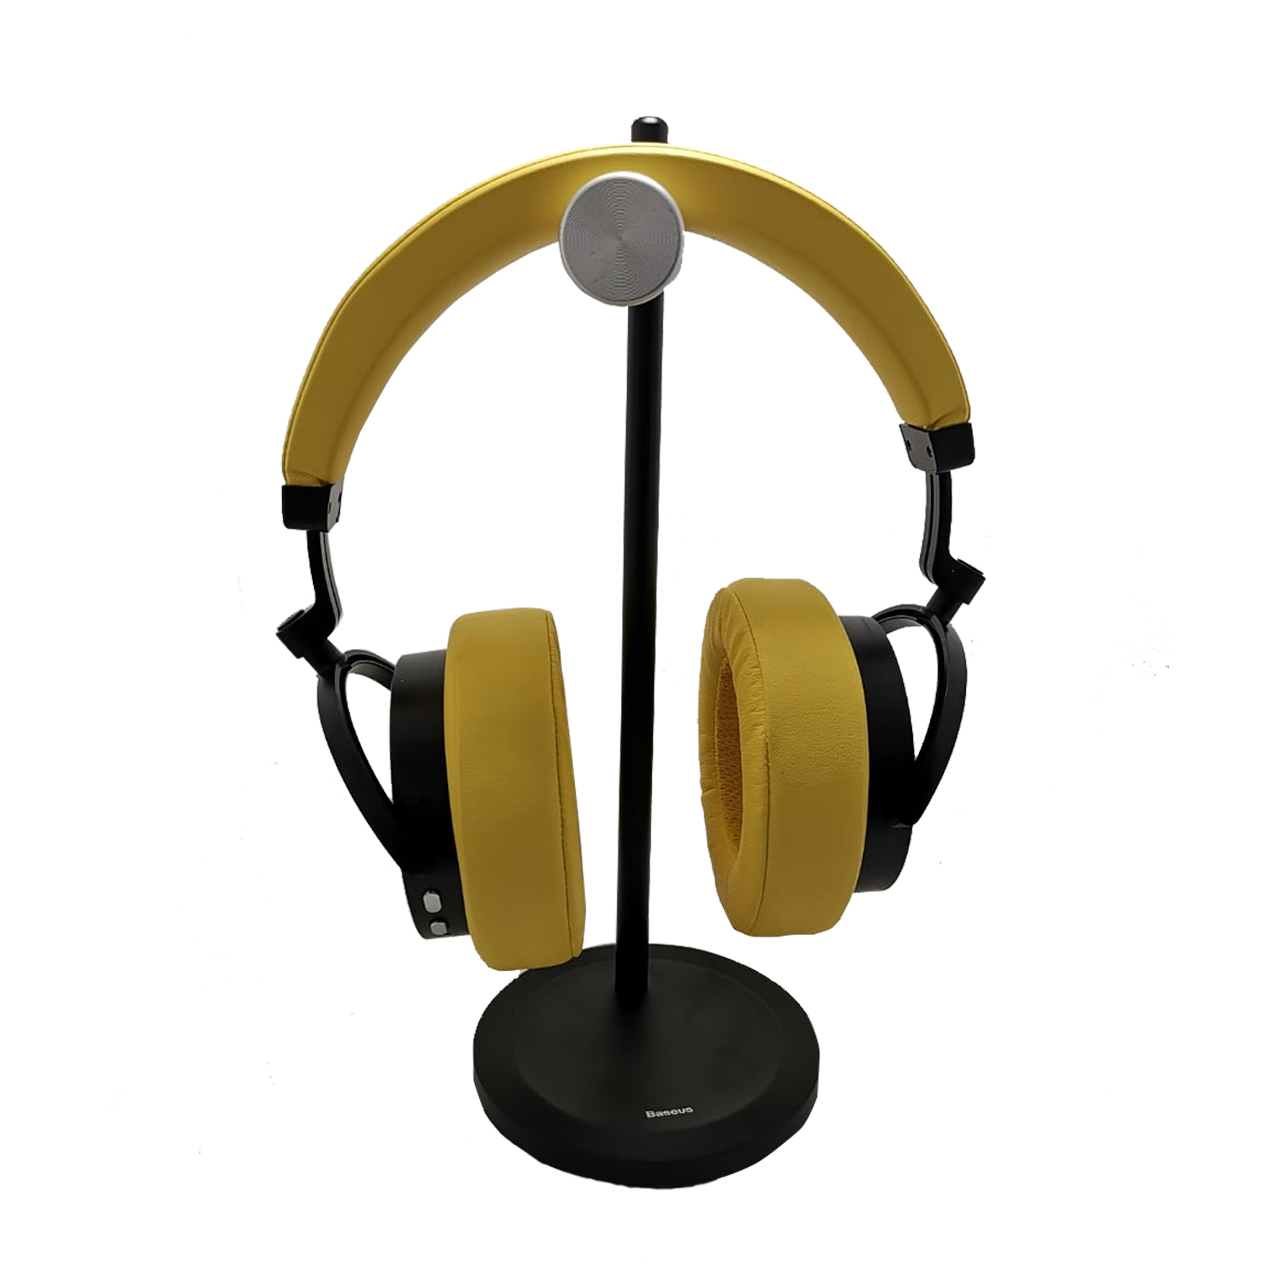 58e4cdcb857 Bluedio T5 Headphone For Sale In Jamaica - Cell Jamaica Electronics